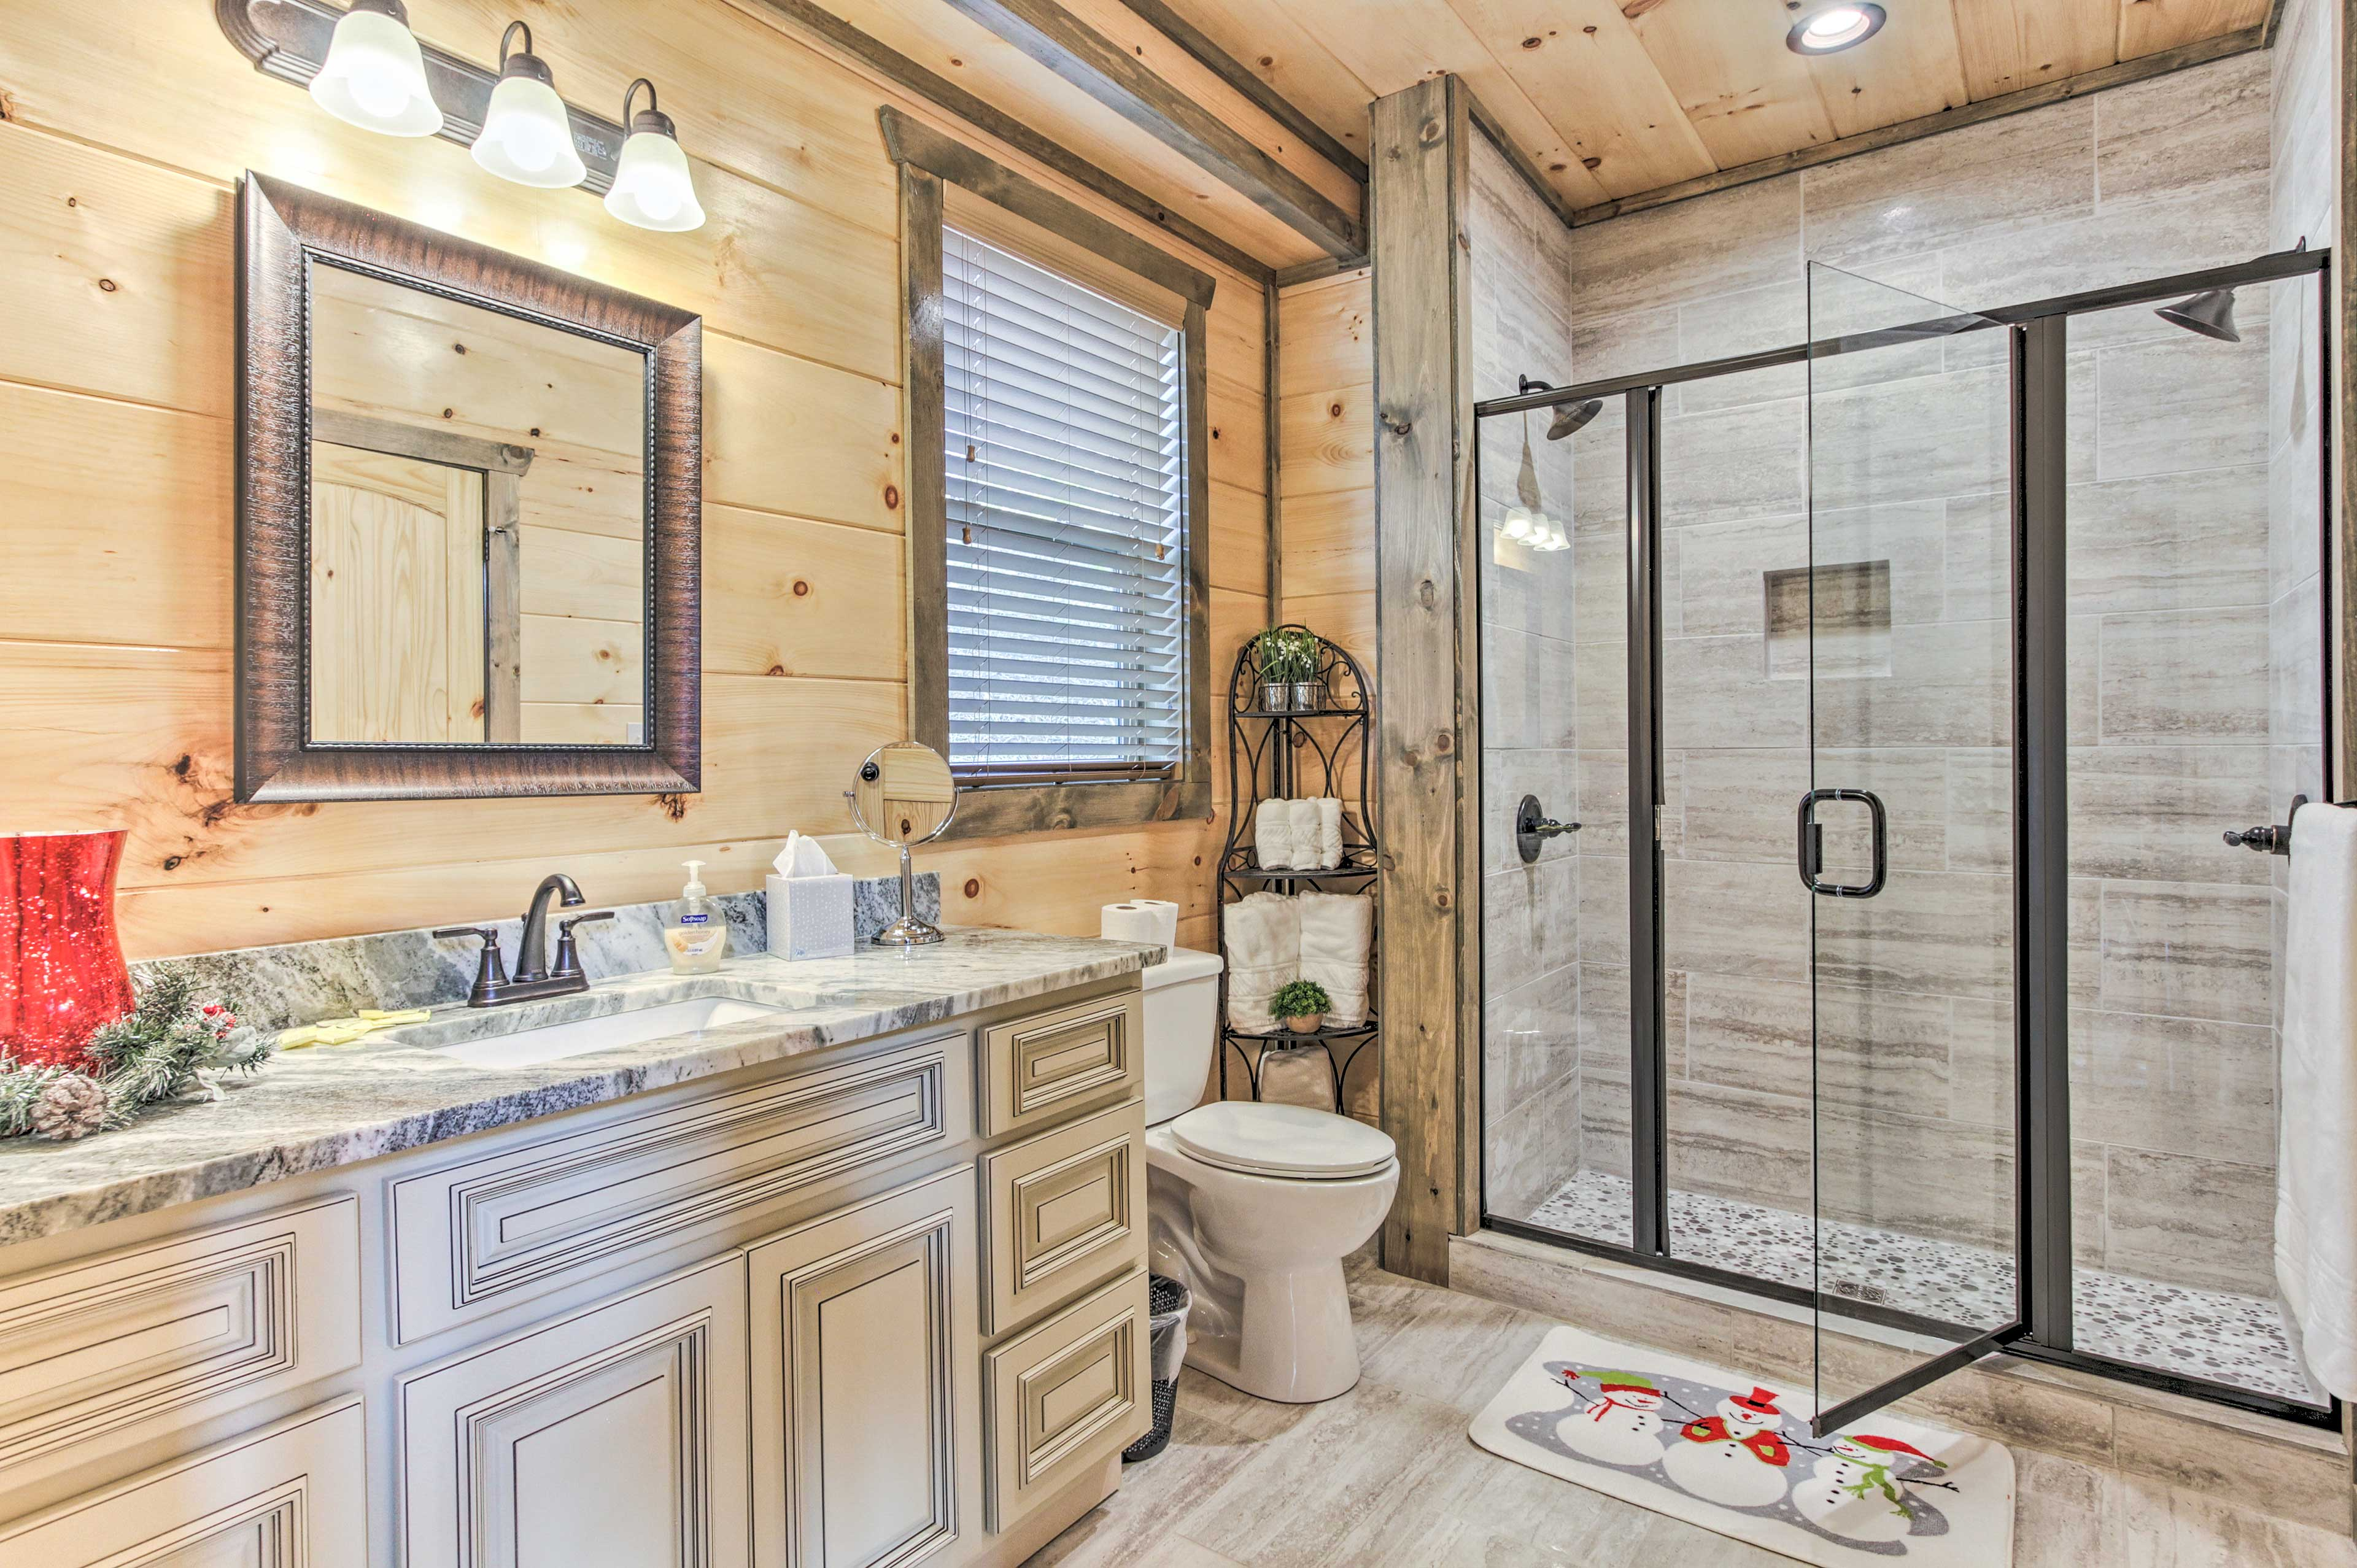 Rinse off before bed in the second bathroom.